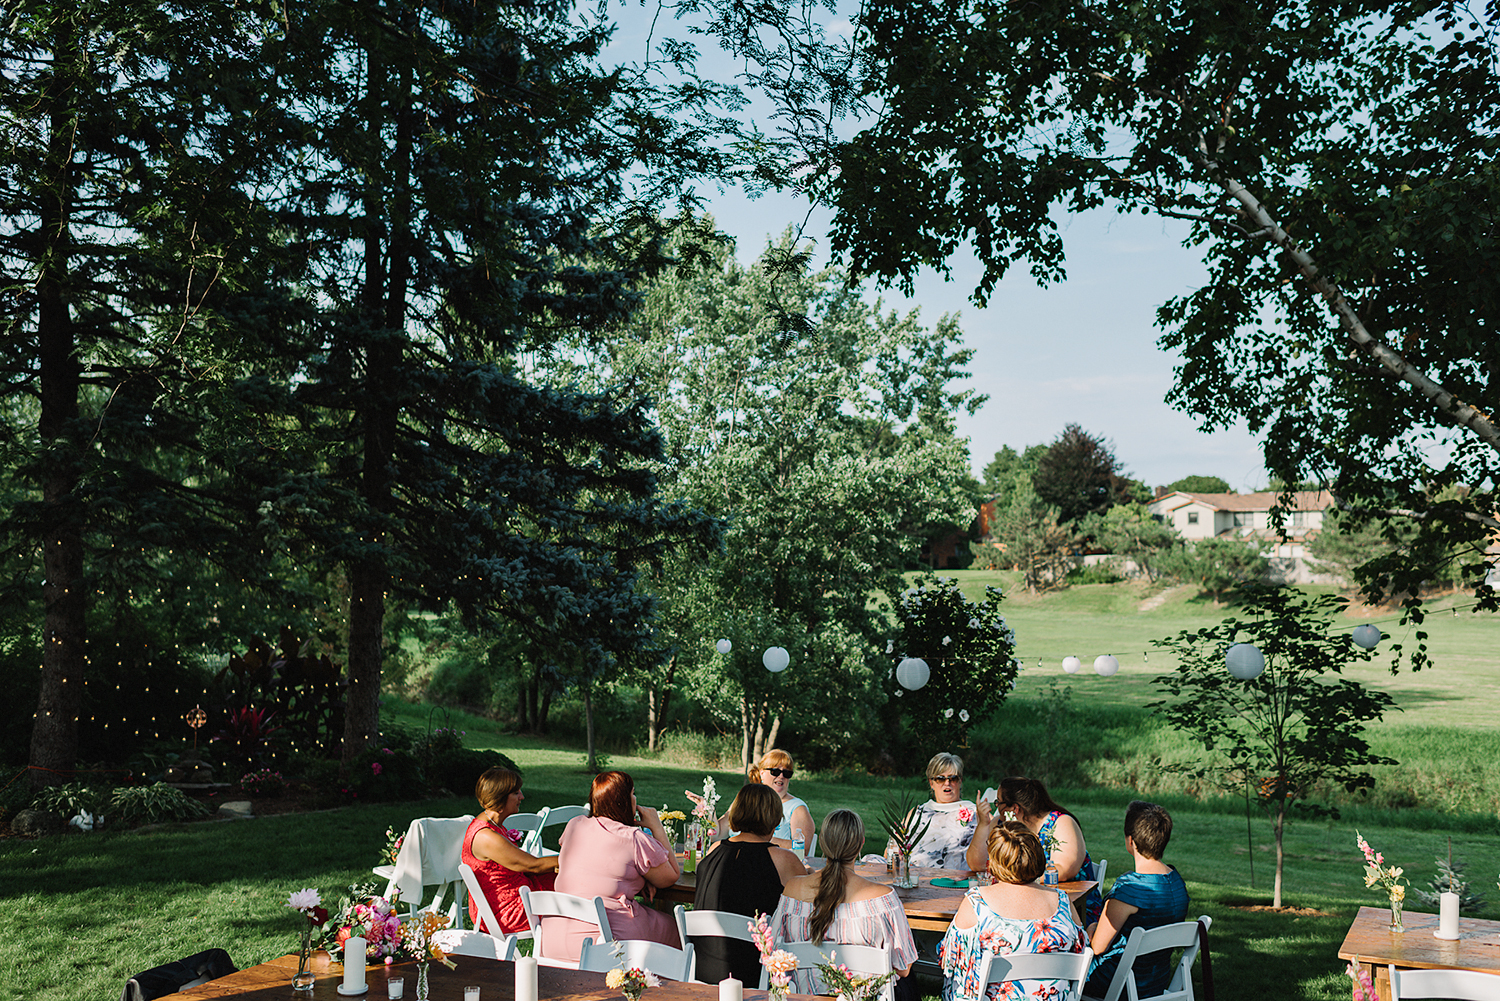 Backyard-family-intimate-cottage-wedding-chatum-kent-toronto-ontario-film-photographer-ryanne-hollies-photography-diy-string-lights-and-lanterns-reception-dinner-documentary-wooden-harvest-tables-diy-decor.jpg